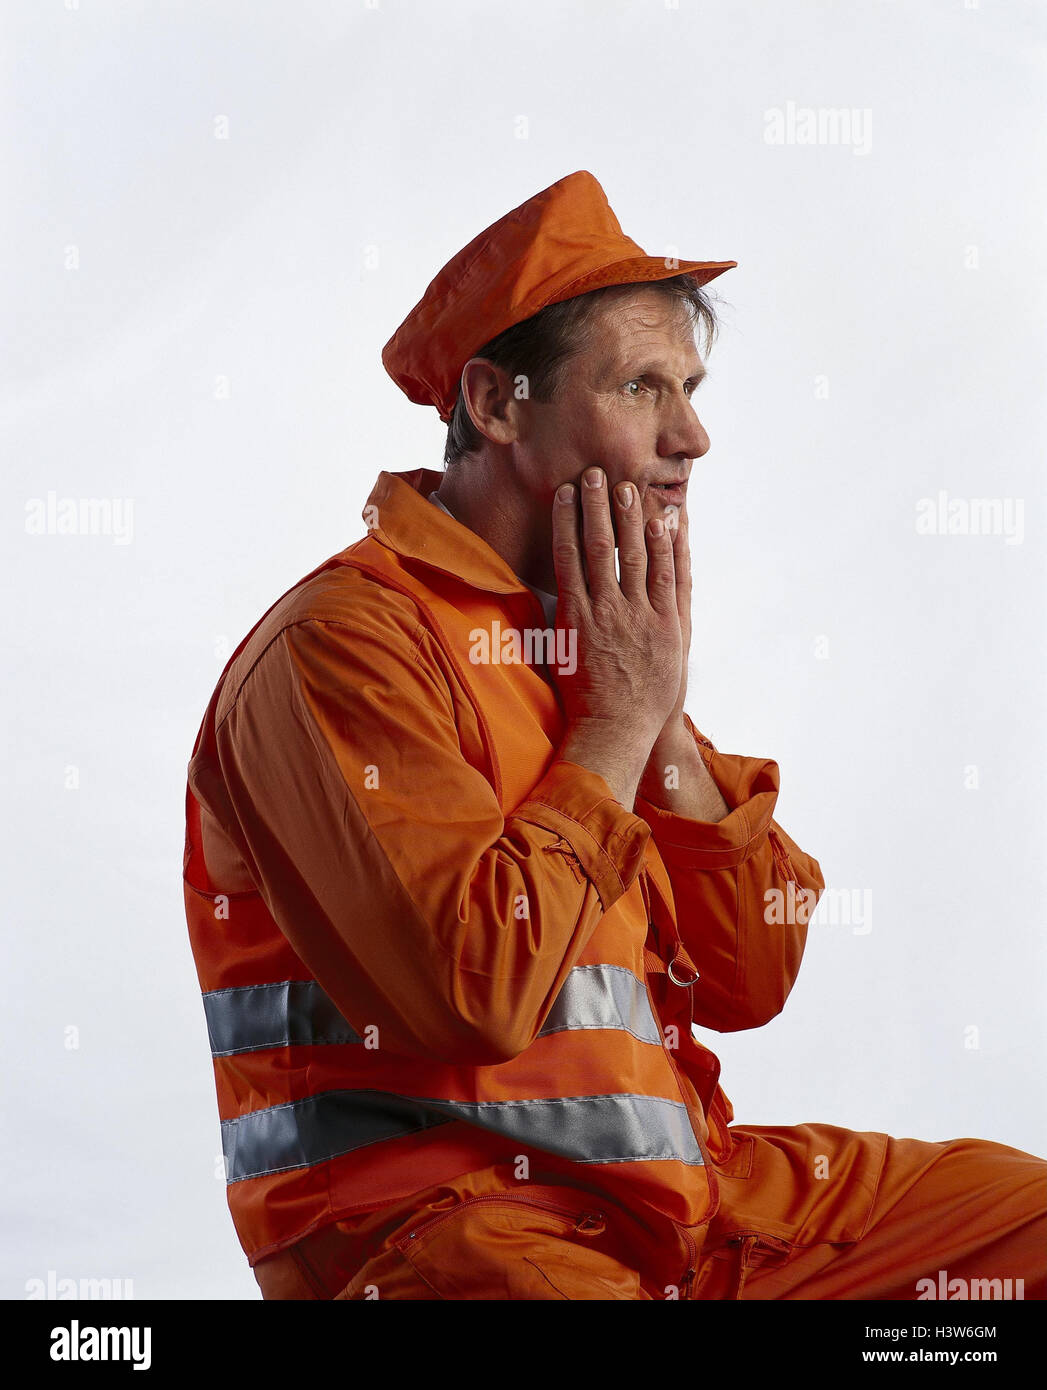 Street worker, gesture, studio, cut out, man, occupation, worker, aghast, in bewilderment, fright, terror, surprise, - Stock Image